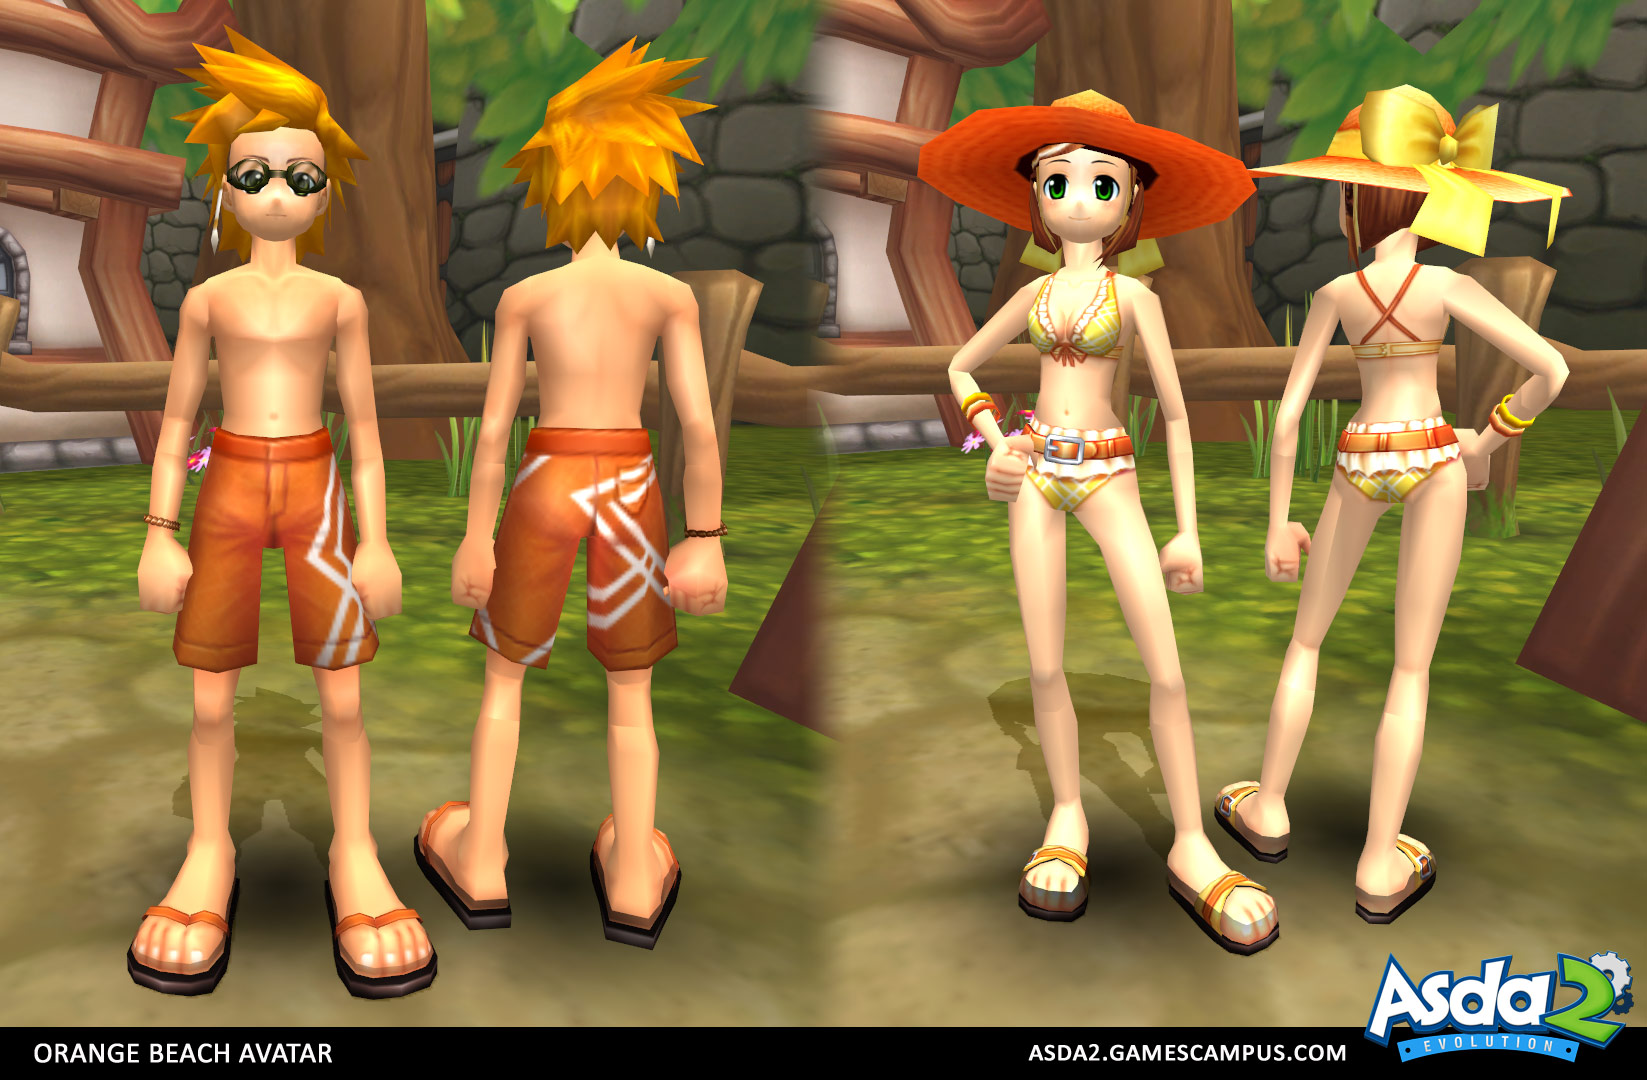 Best Anime MMORPG - Asda 2 - Orange Beach Set